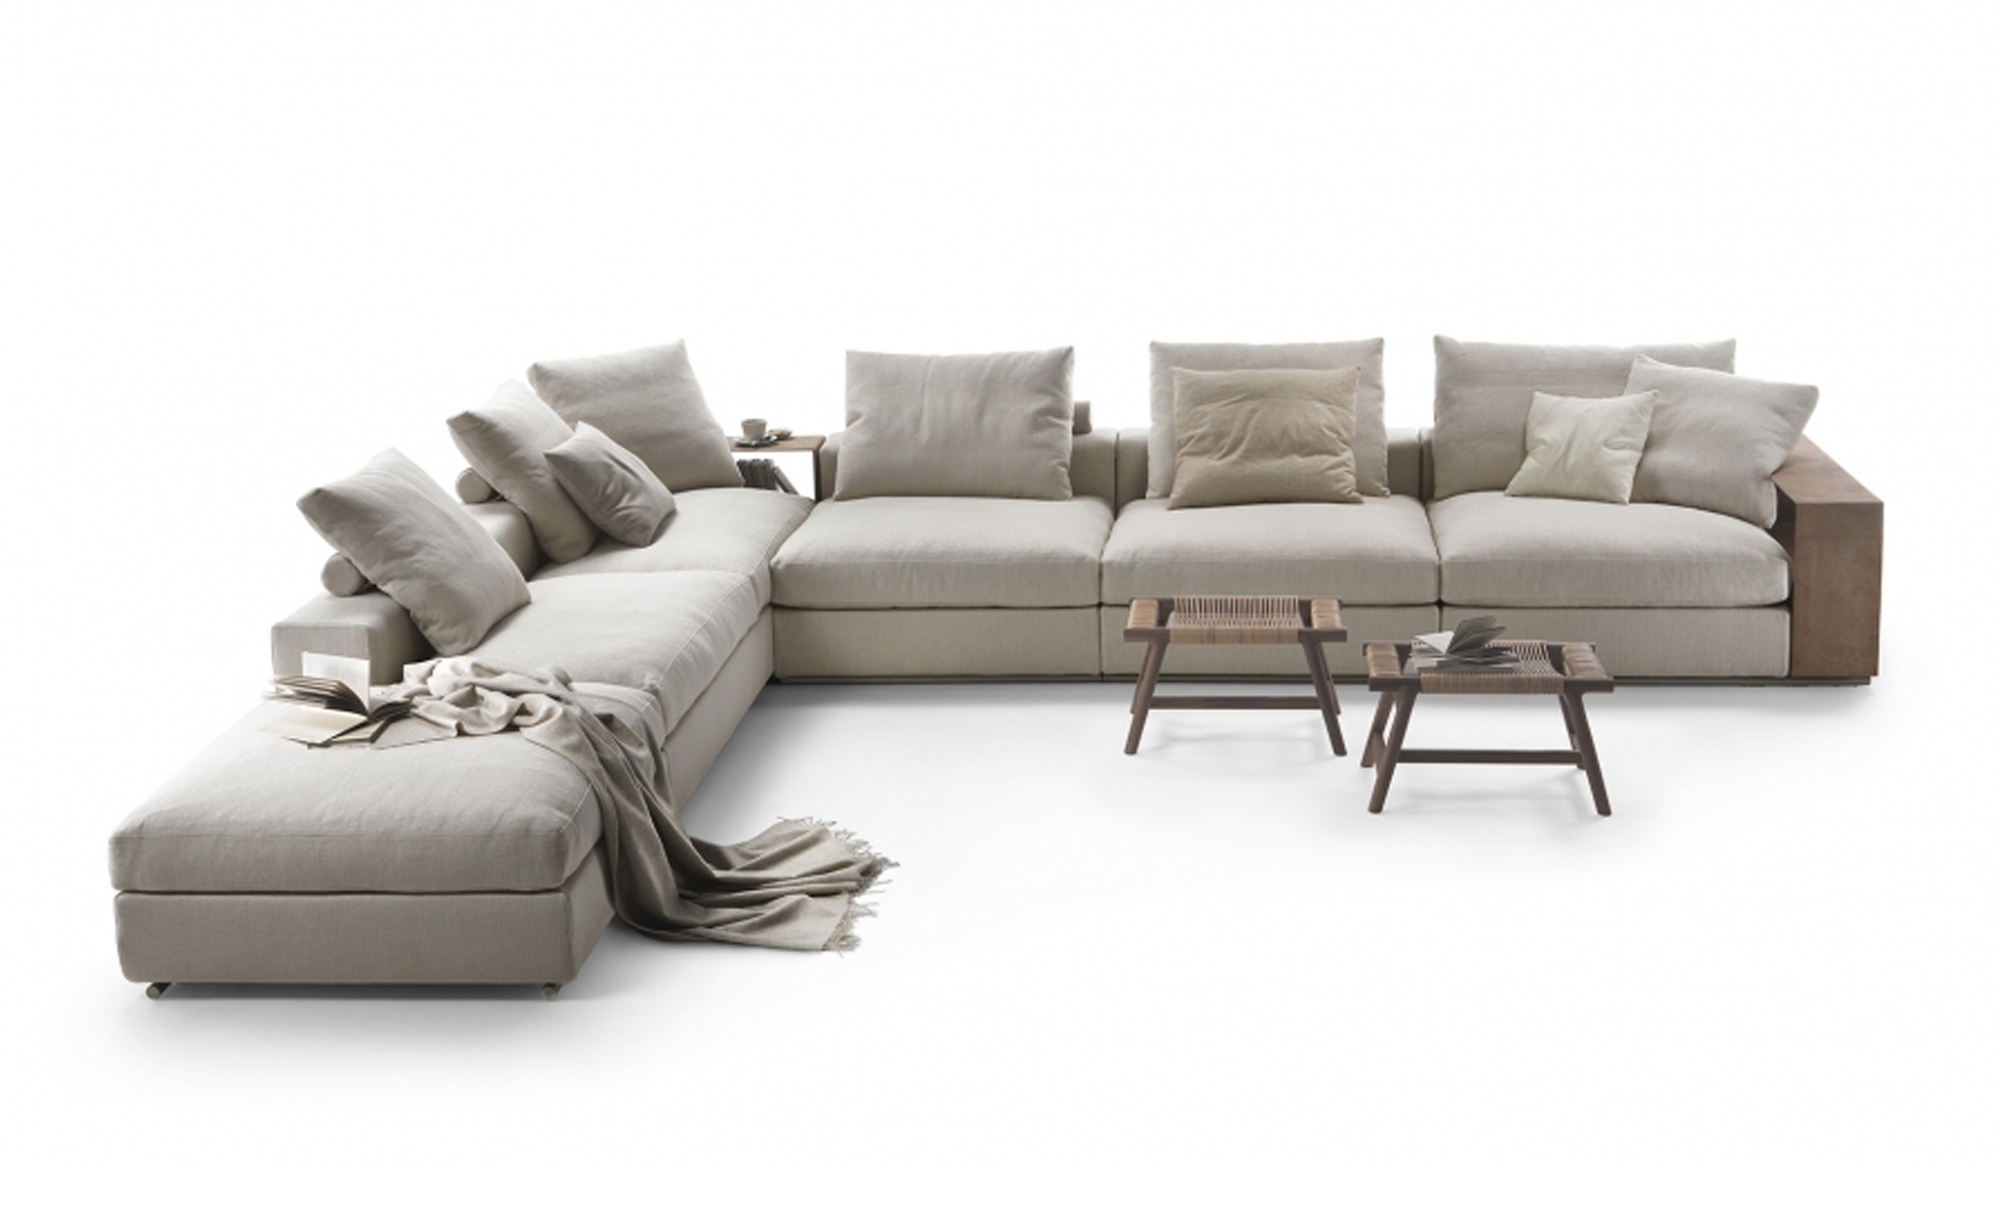 Couches And Sofas Groundpiece Sofas Fanuli Furniture